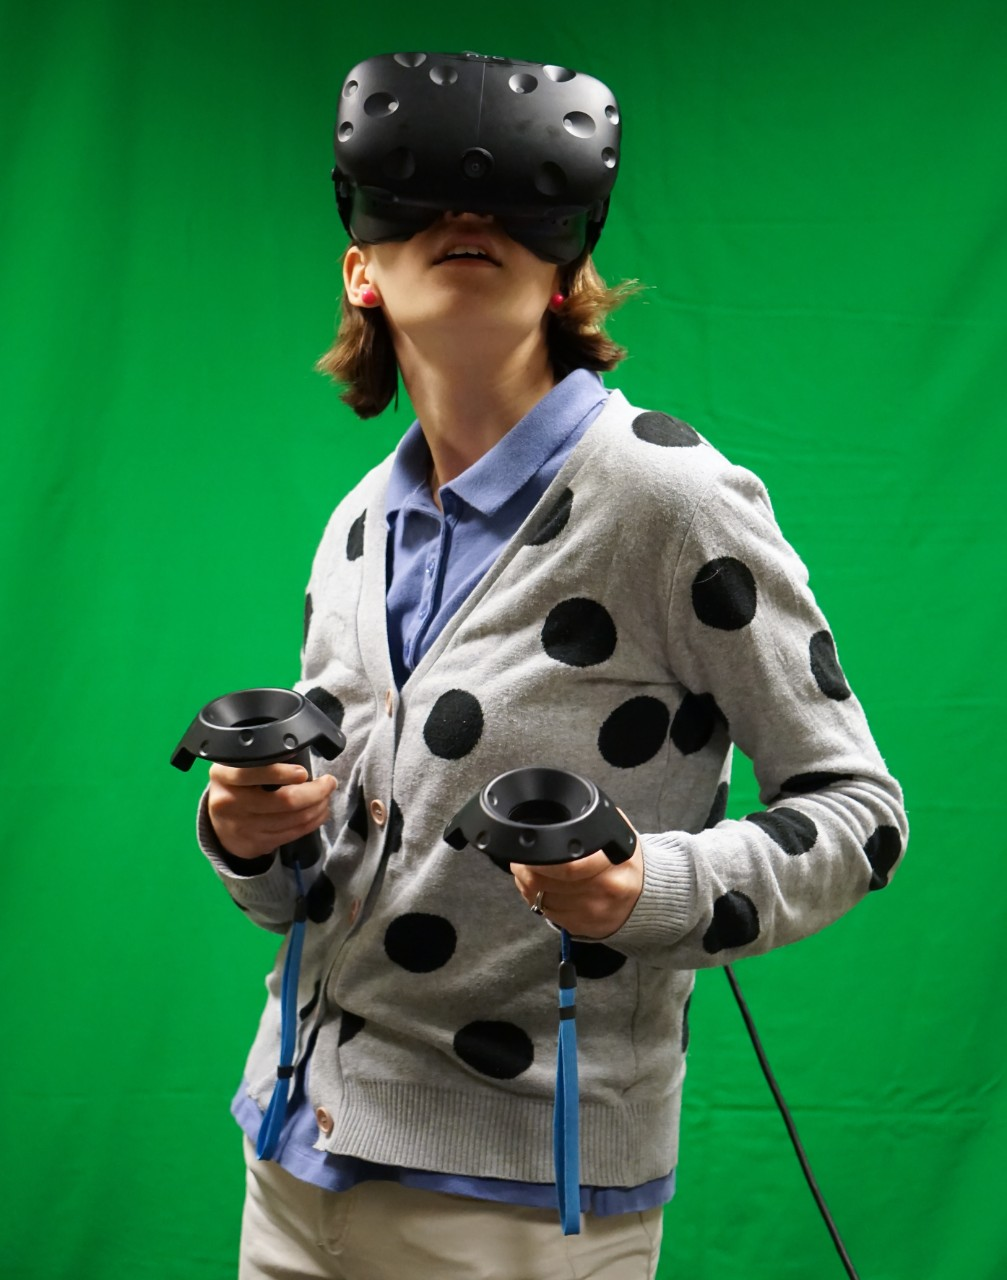 Student uses virtual reality headset and handheld controllers